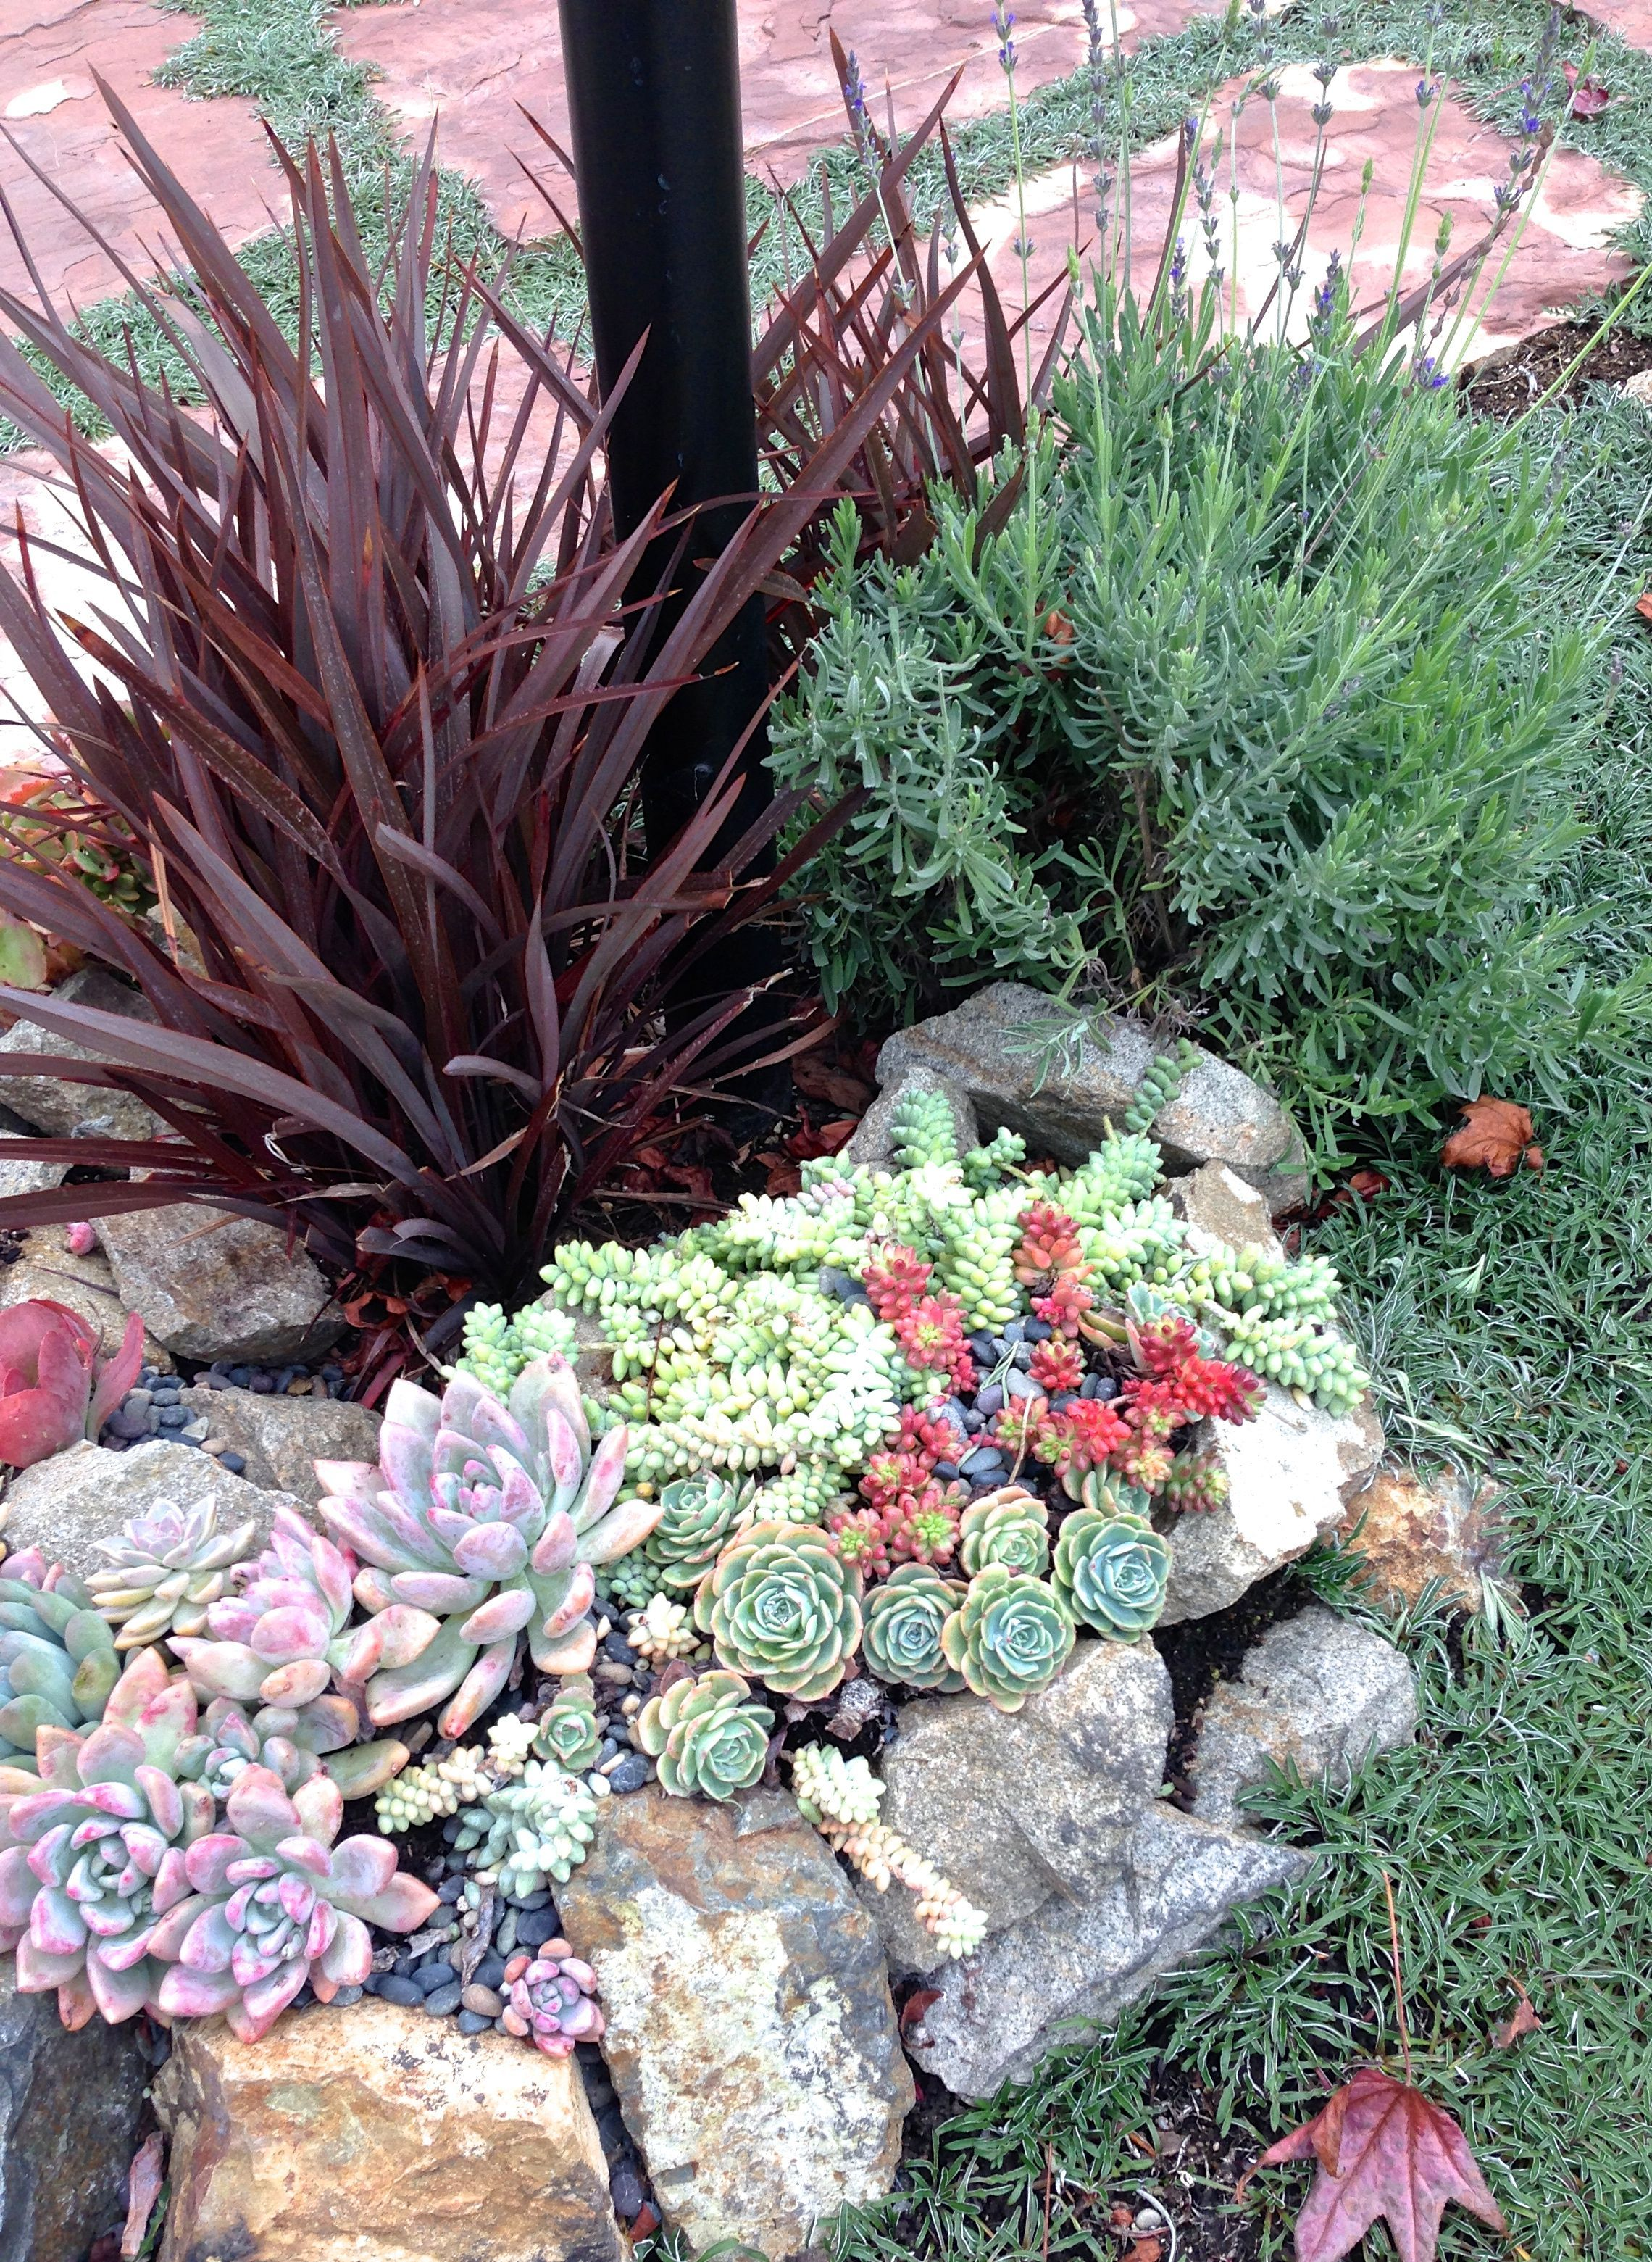 Succulent variety with flax plant and lavender in rock garden ... on japanese garden design, slope garden design, garden waterfalls design, backyard idea landscaping garden design, desert garden design, italian garden design, spanish courtyard garden design, hillside garden design, modern garden design, agave garden design, white garden design, cool garden design, mexican feather grass garden design, best garden design, cottage garden design, perennial garden design, woodland garden design, german garden design, small garden design, southwest garden design,